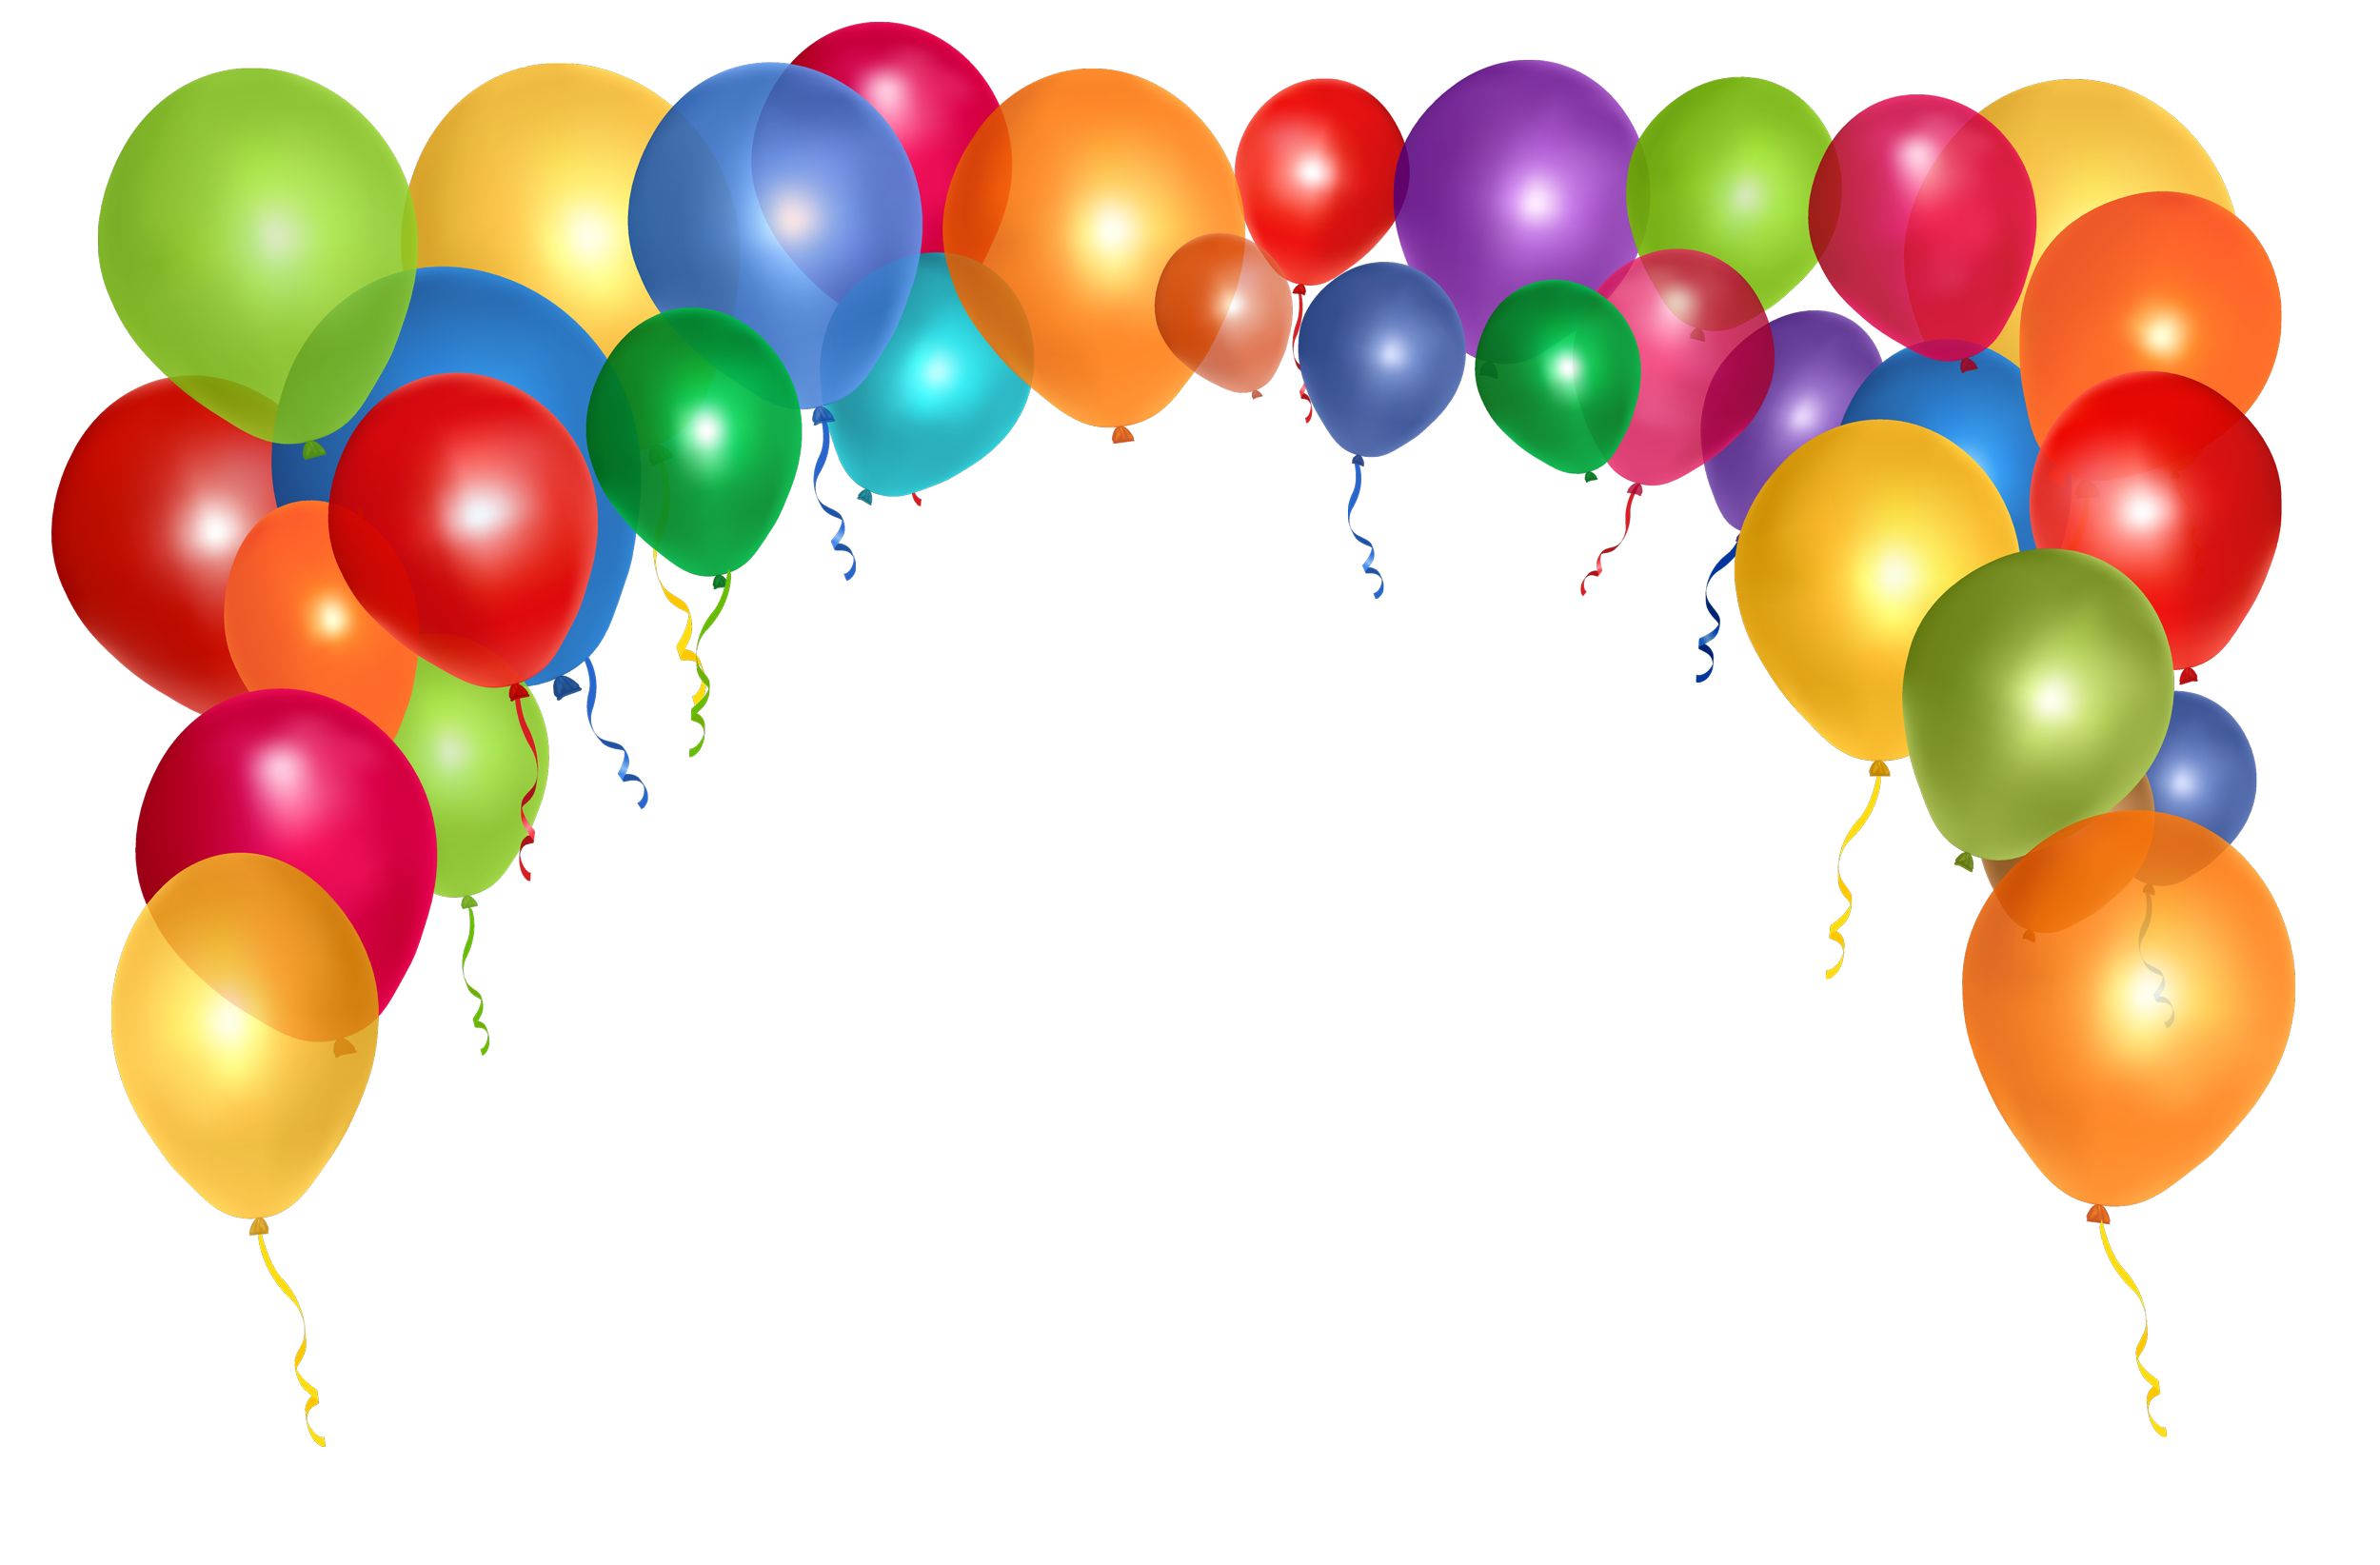 Colorful Balloons PNG Transparent Image